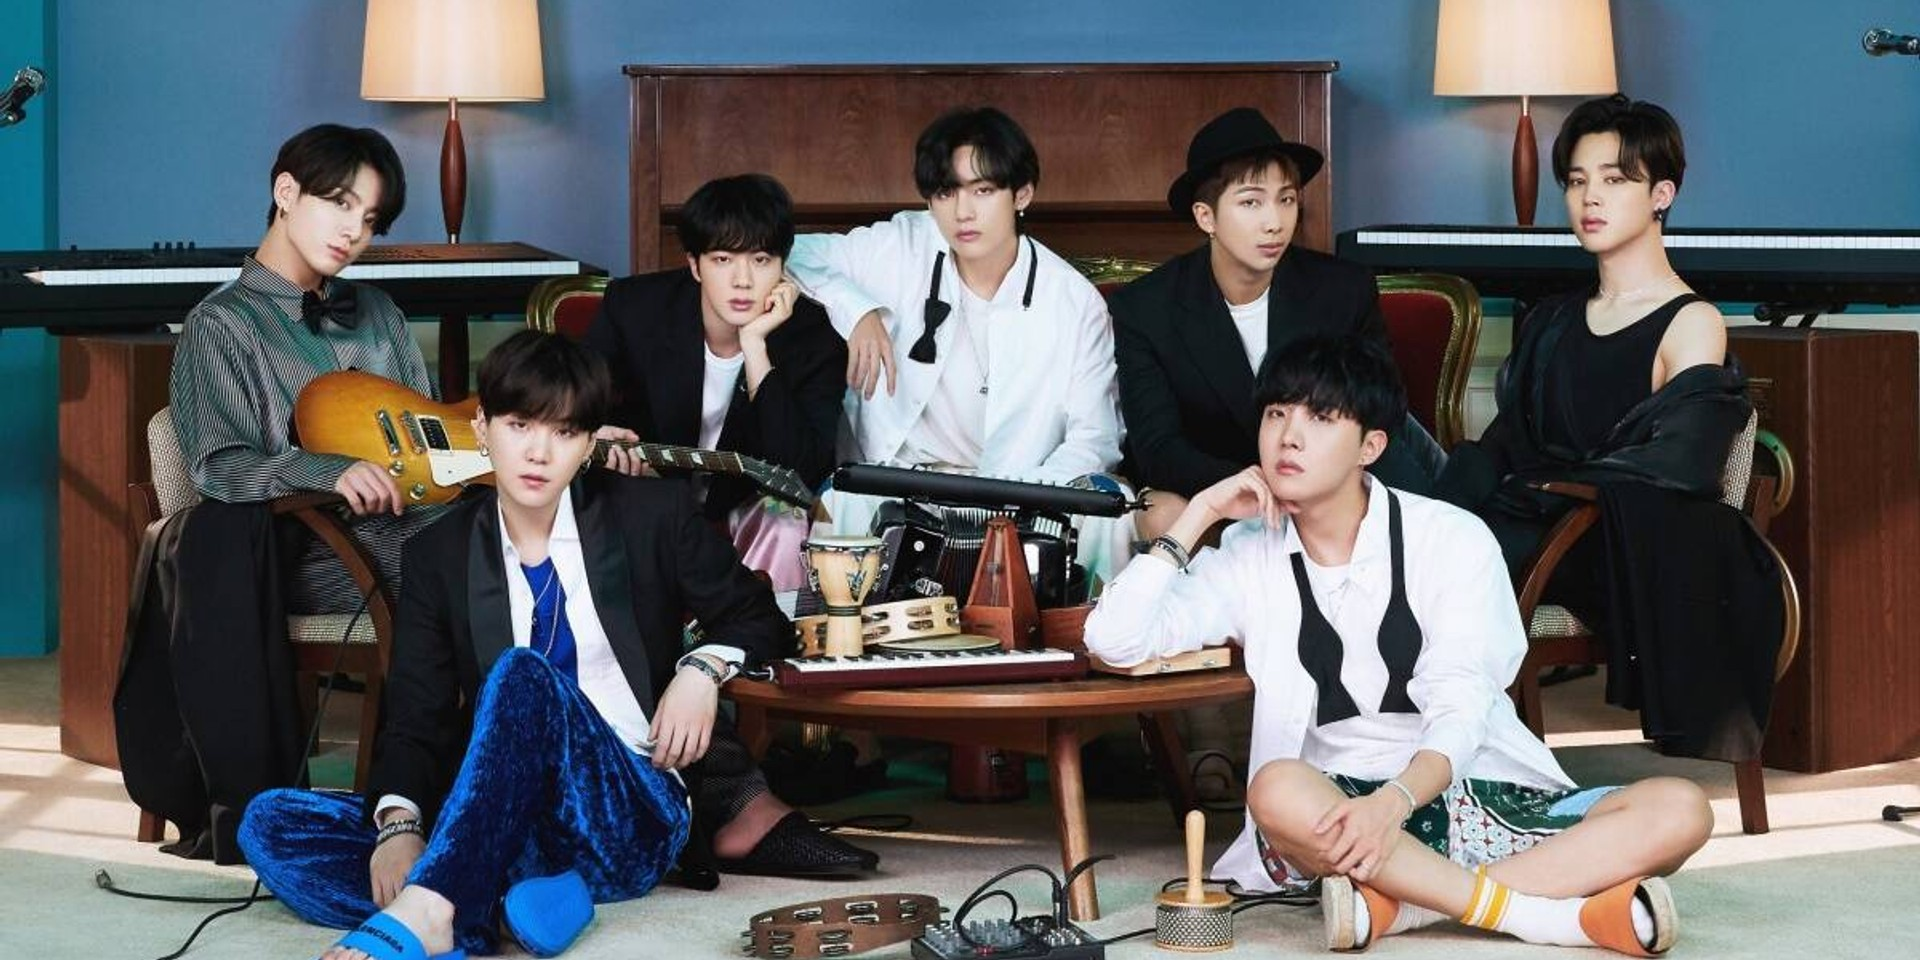 BTS continue 'LOVE MYSELF' campaign with UNICEF to help end violence and promote self-love